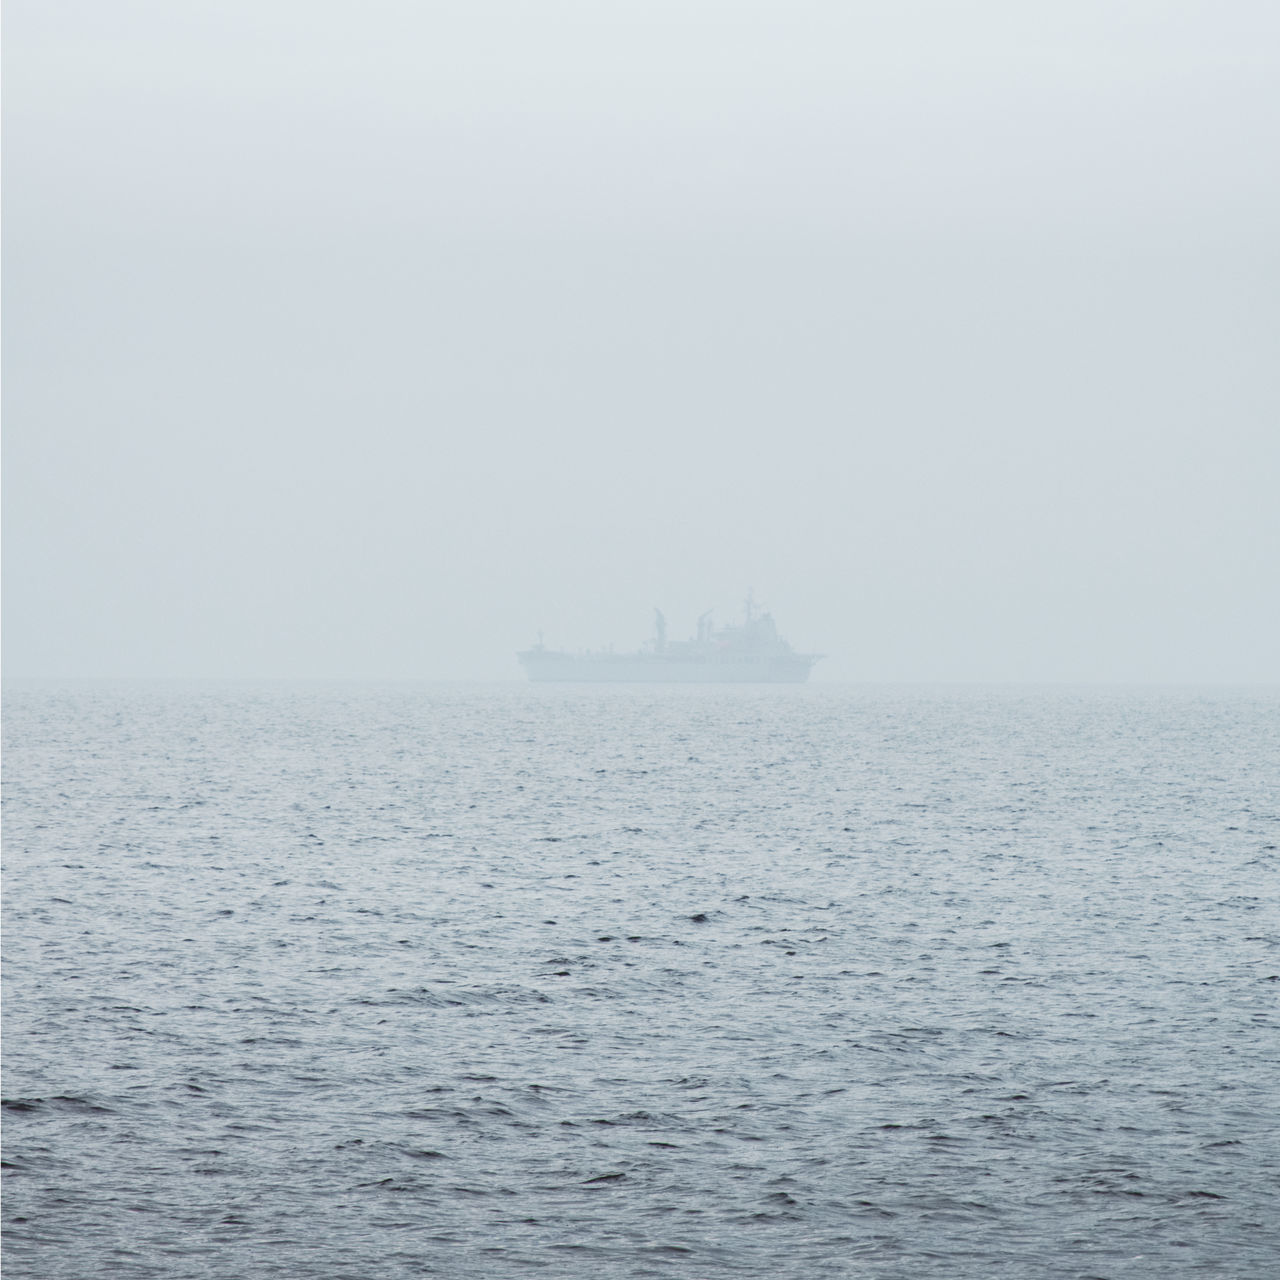 A marinship patrolling along Jervis Bay at a foggy morning Adventure Australia Beauty In Nature Day Foggy Hello World Horizon Over Water Marine Marinship Nature Nautical Vessel No People Outdoors Sailing Sailing Ship Scenics Sea Sky Tranquility Transportation Water